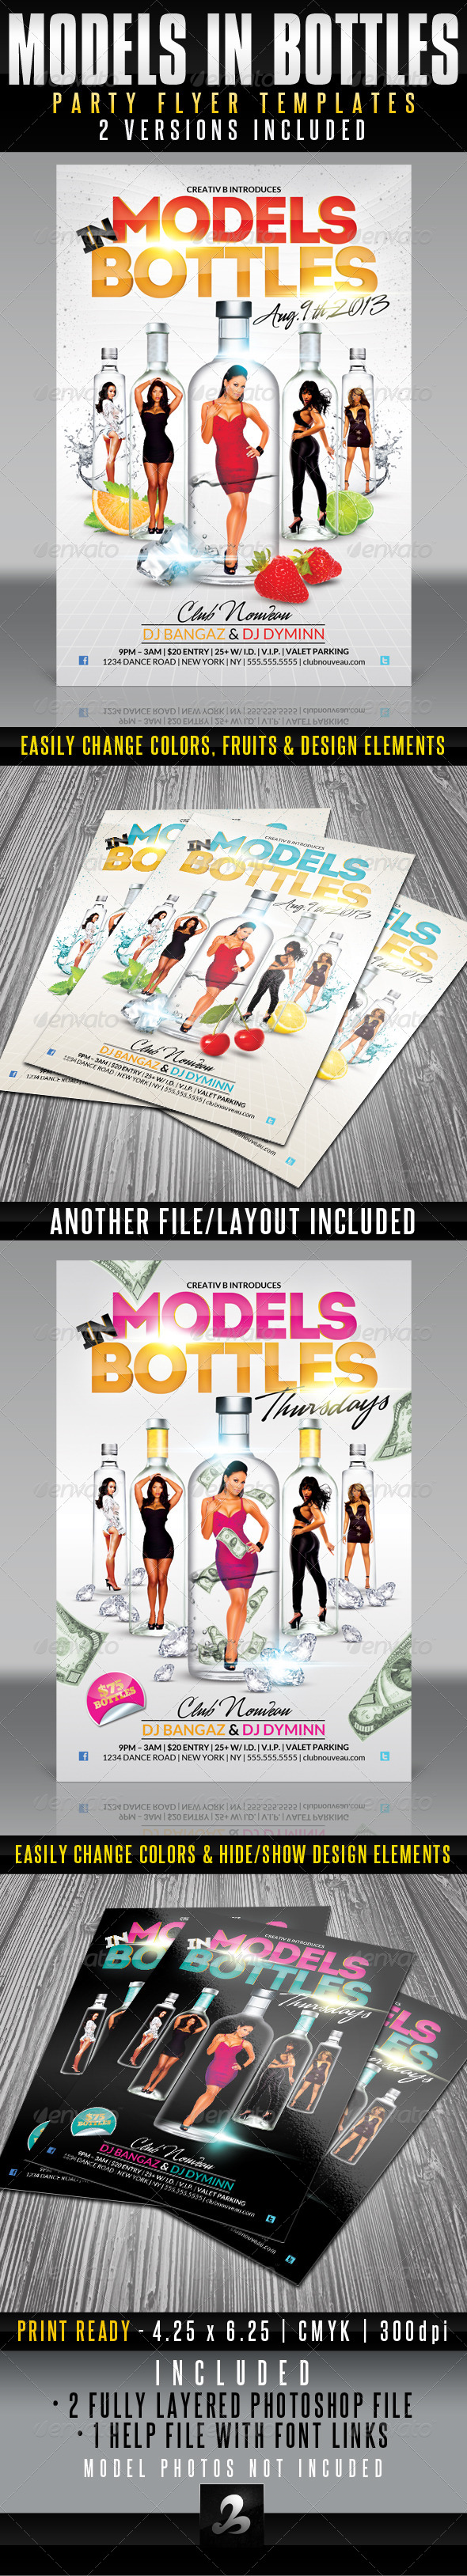 Models in Bottles Party Flyer Templates - Clubs & Parties Events